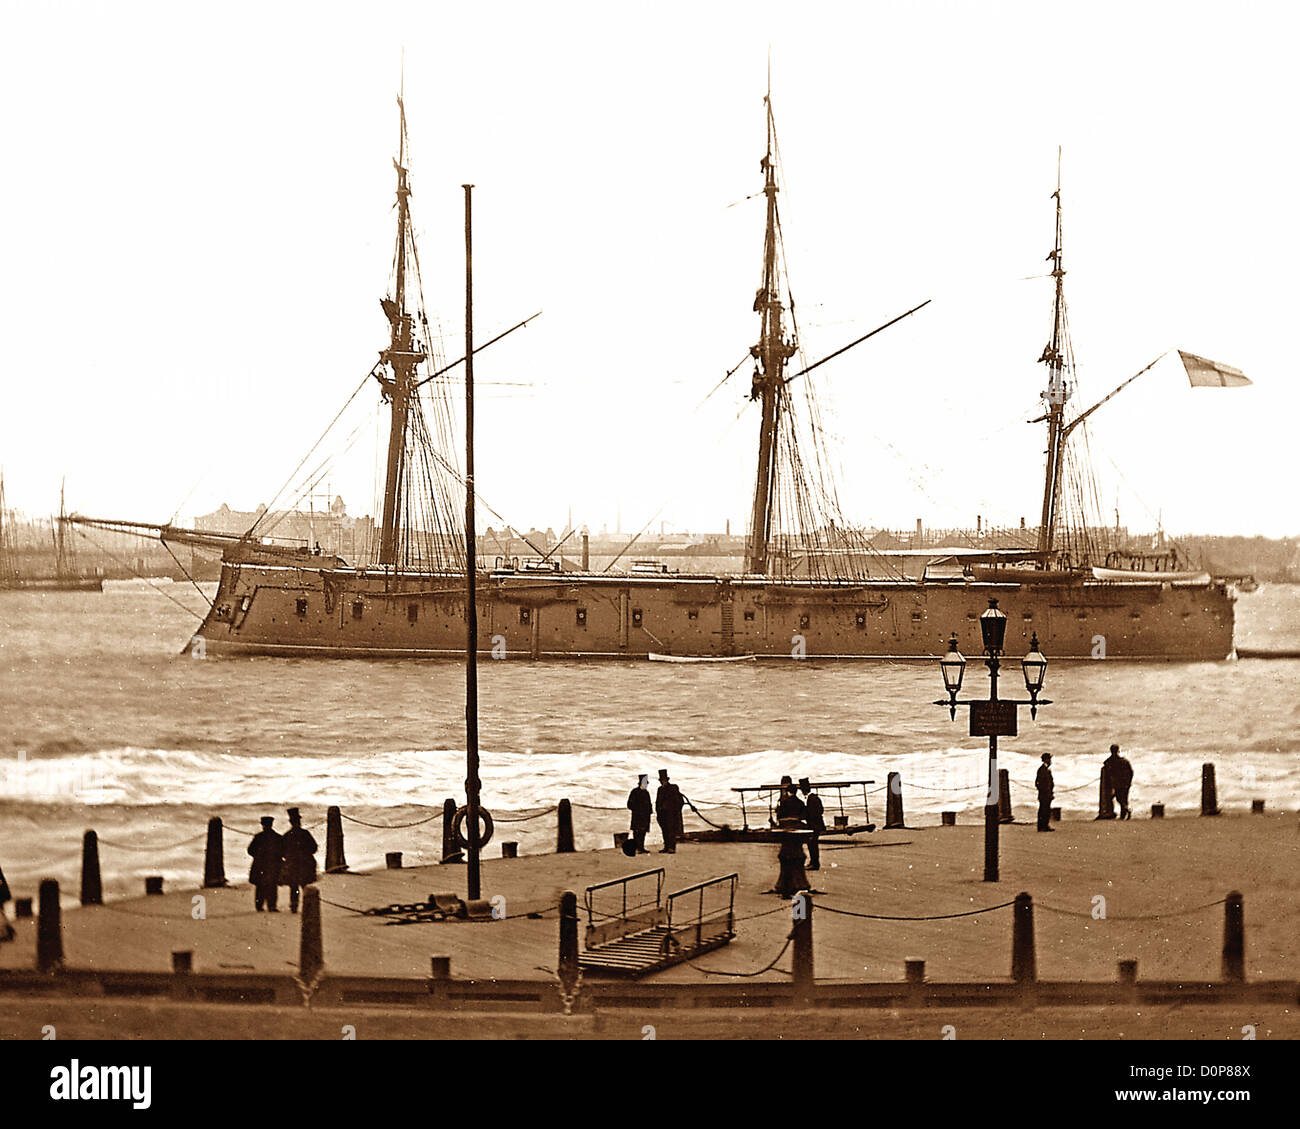 Defence Class Ironclad Warship on the River Mersey Victorian period - Stock Image